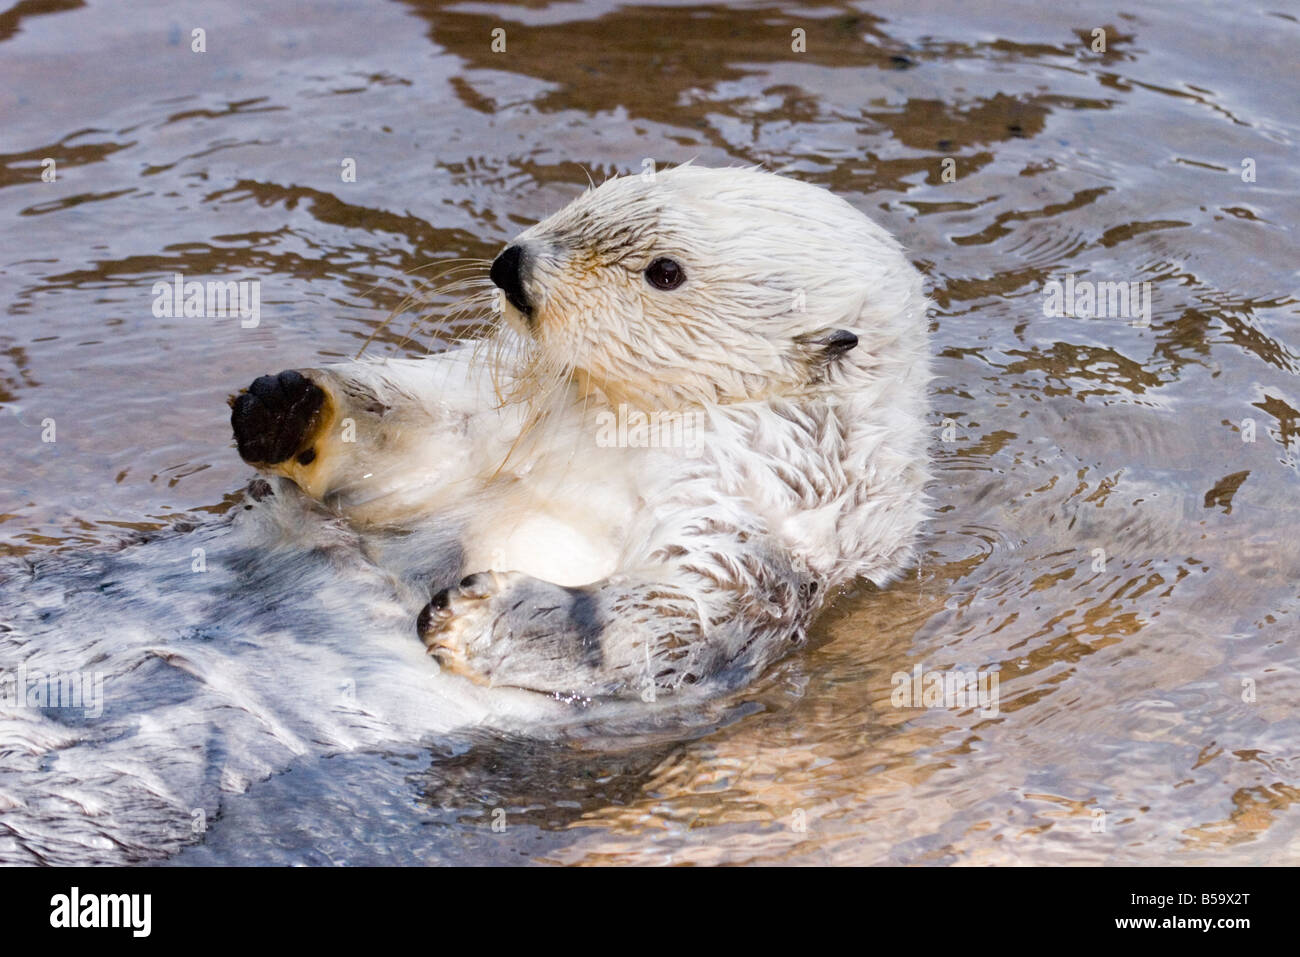 Sea Otter Enhydra lutris Pt Defiance Zoo WASHINGTON United States 3 March Older Adult Mustelidae - Stock Image